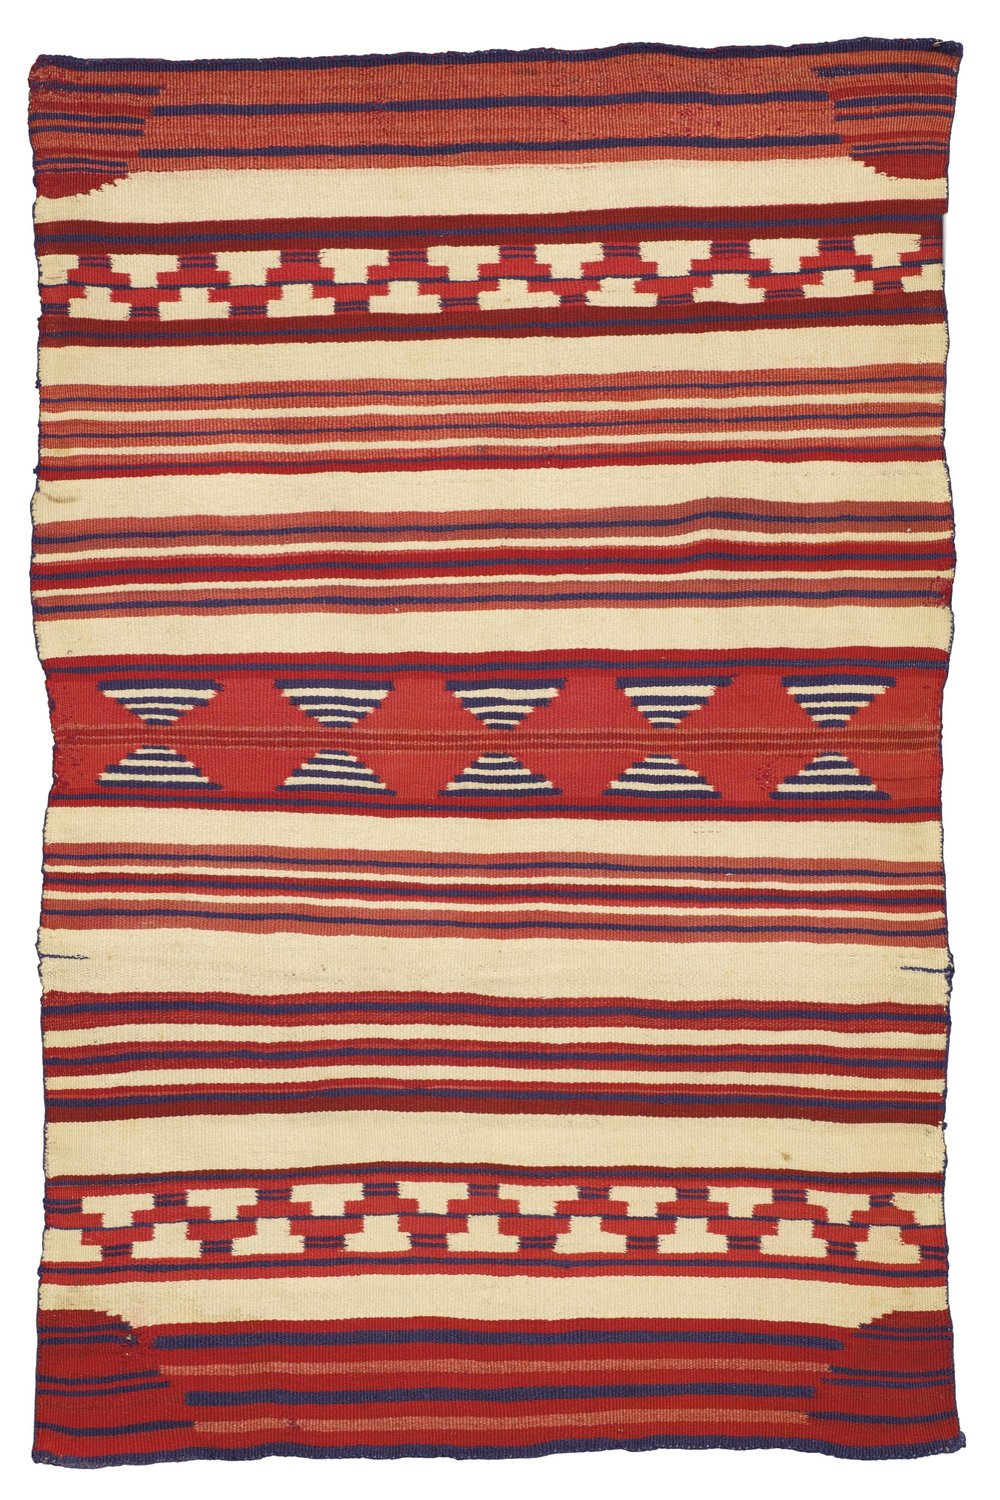 Navajo child's blanket